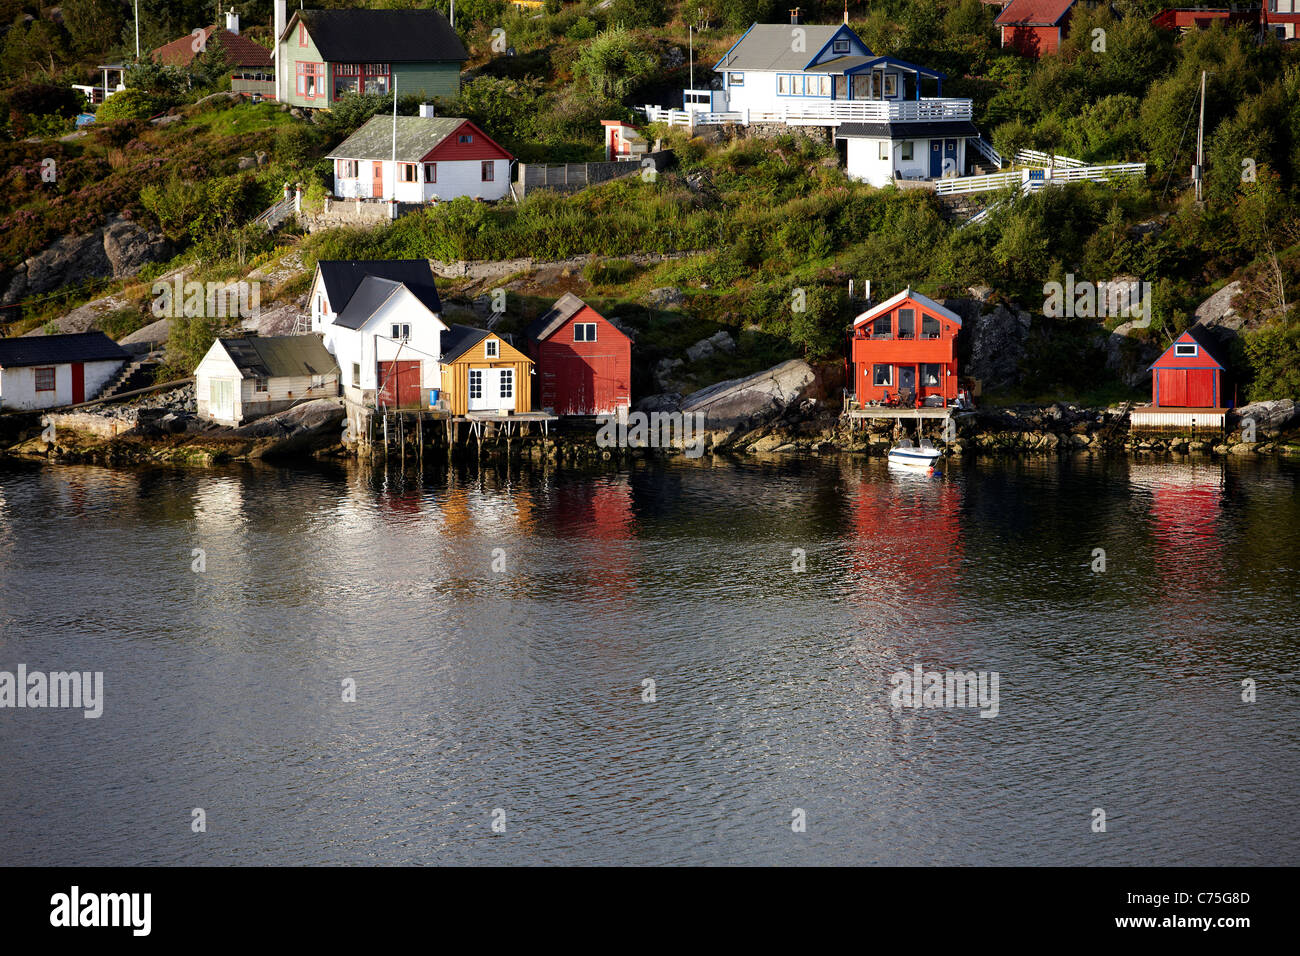 Traditional Norwegian timber-clad properties on the fjord side, Bergen, Norway. - Stock Image